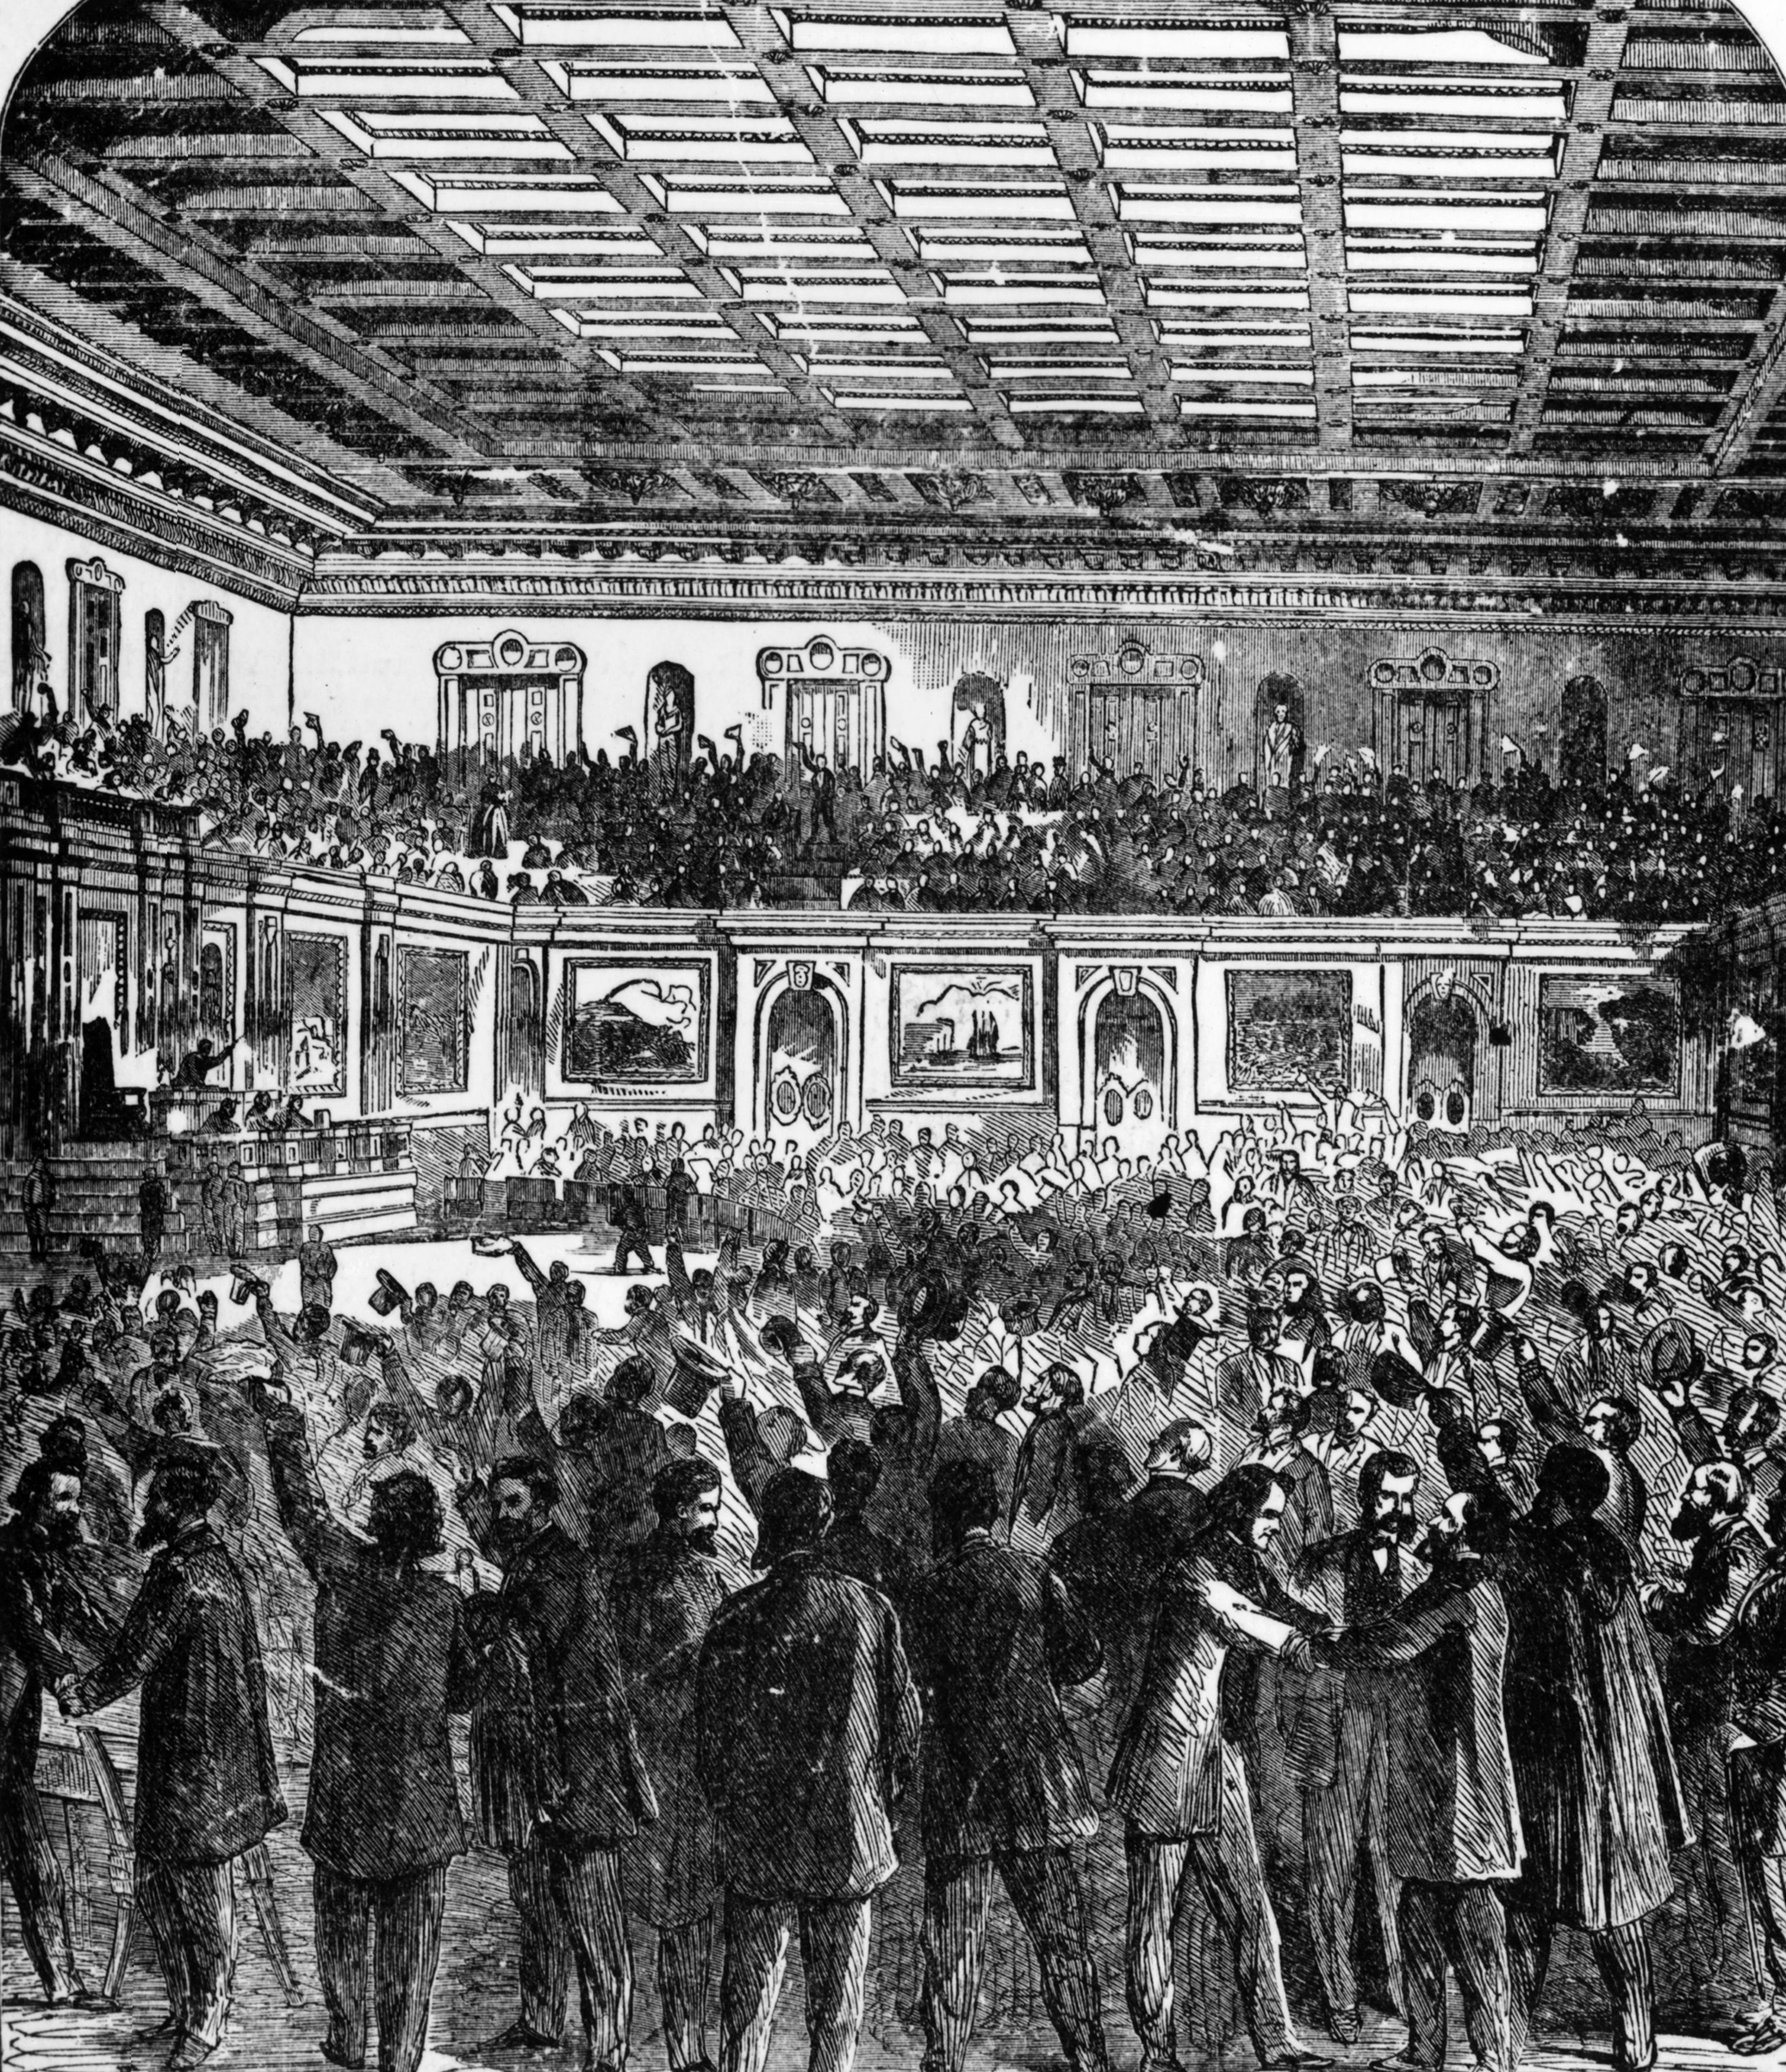 The House of Representatives celebrating the passage of the 13th Amendment to the U.S. Constitution which prohibited slavery, Dec. 6, 1865.